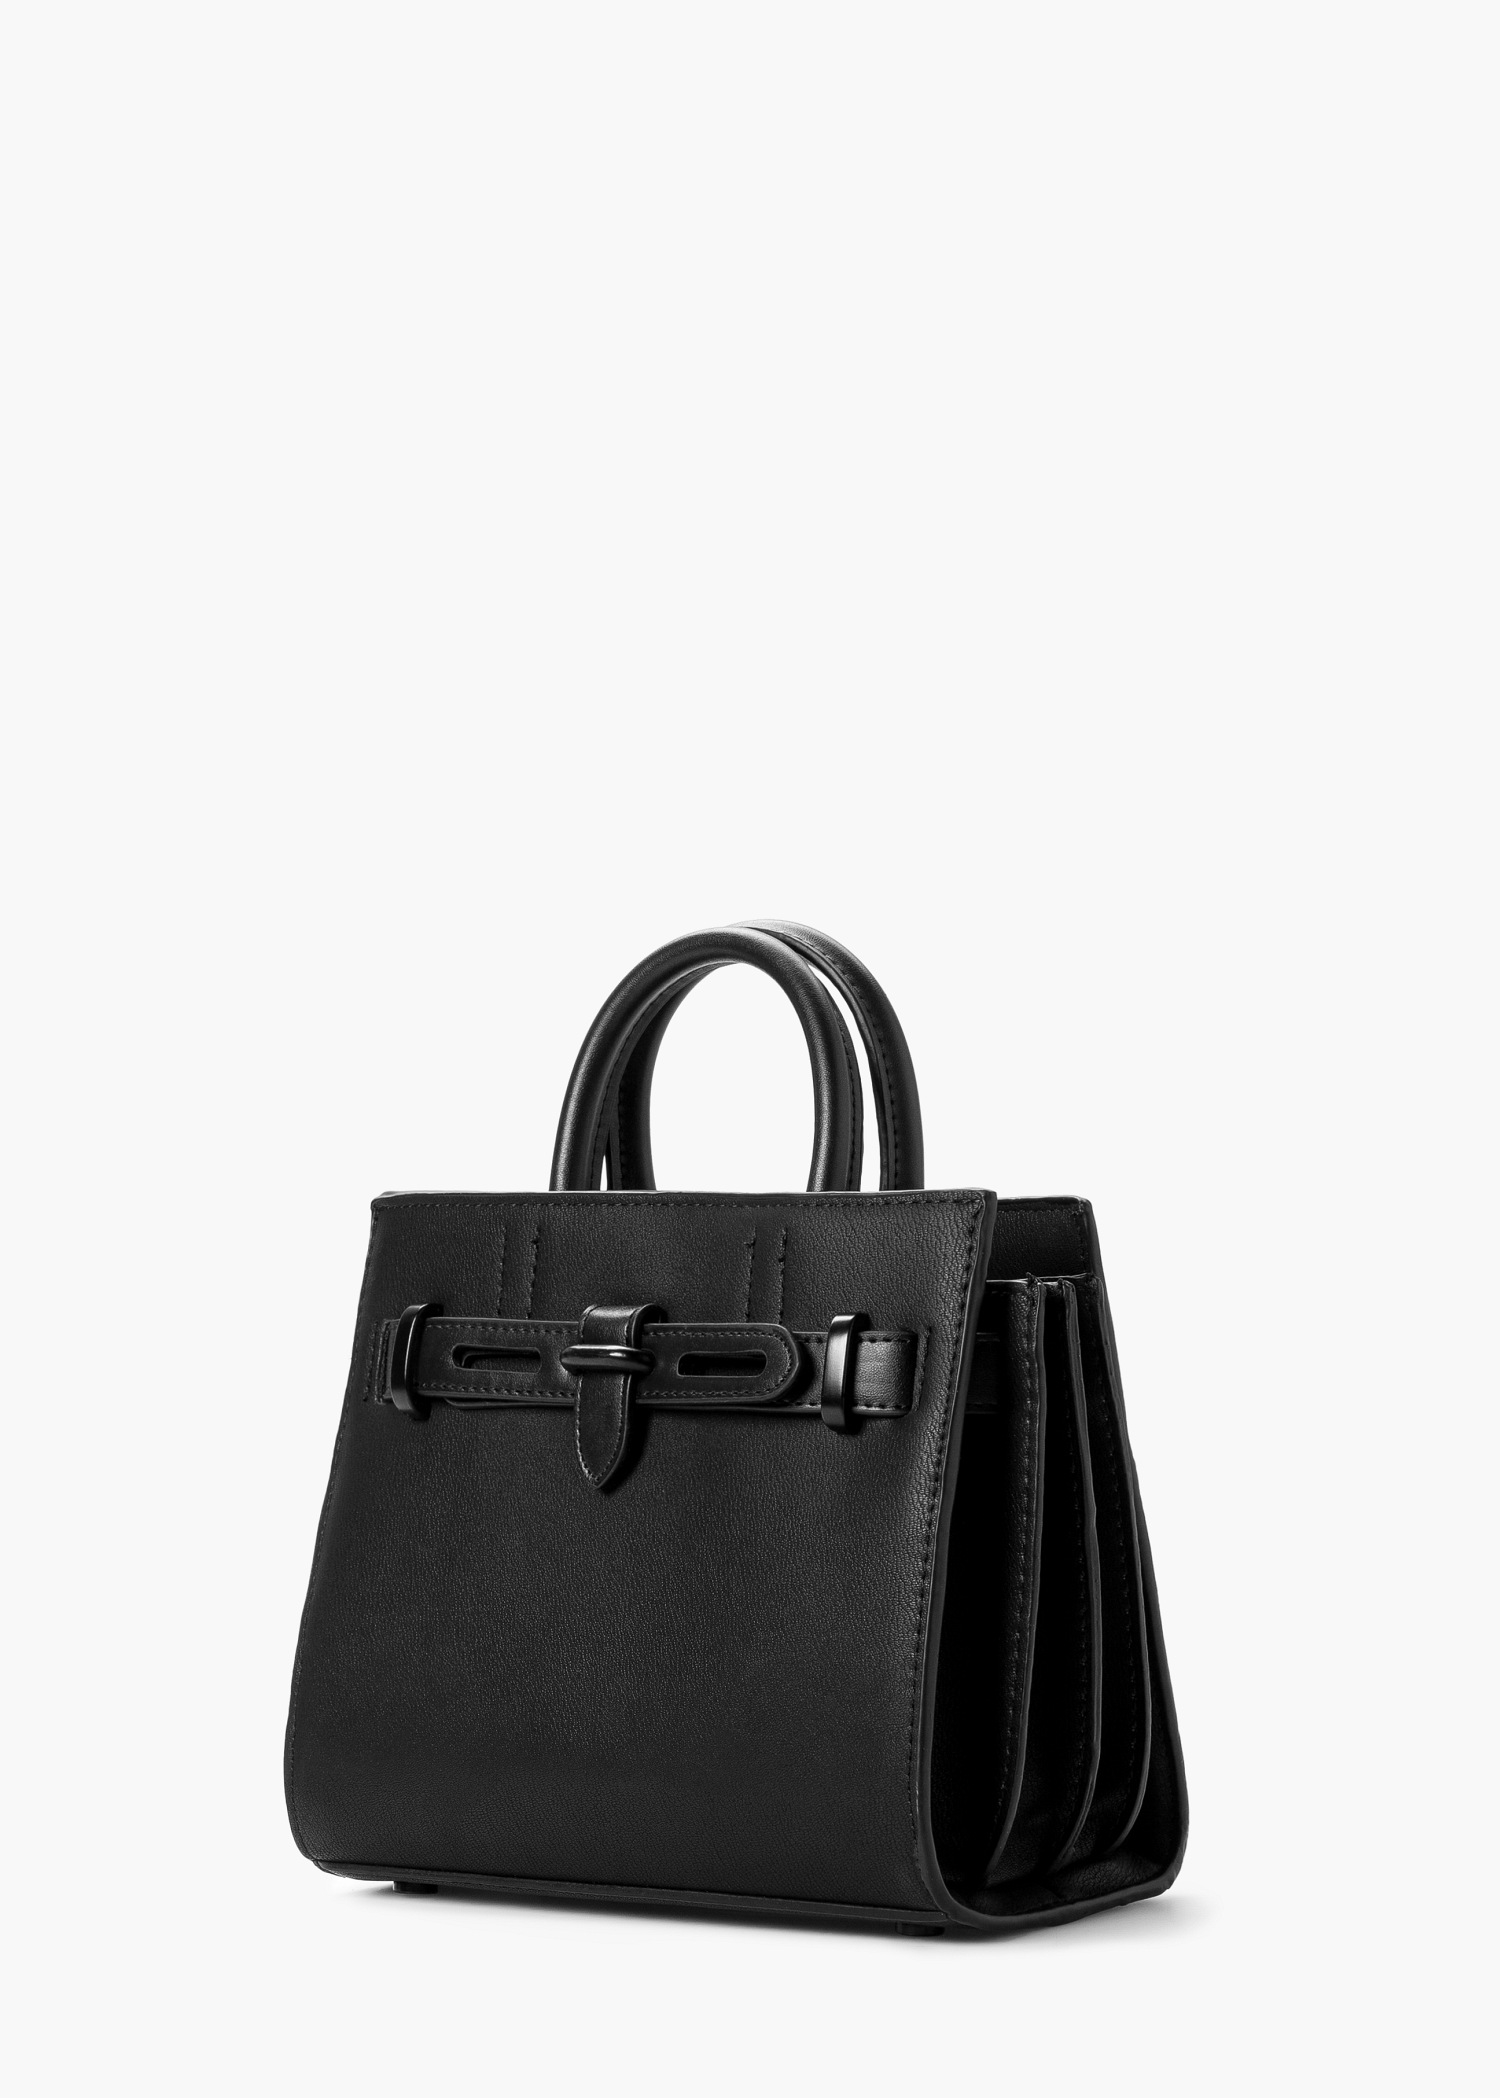 Mango Small Tote Bag in Black | Lyst